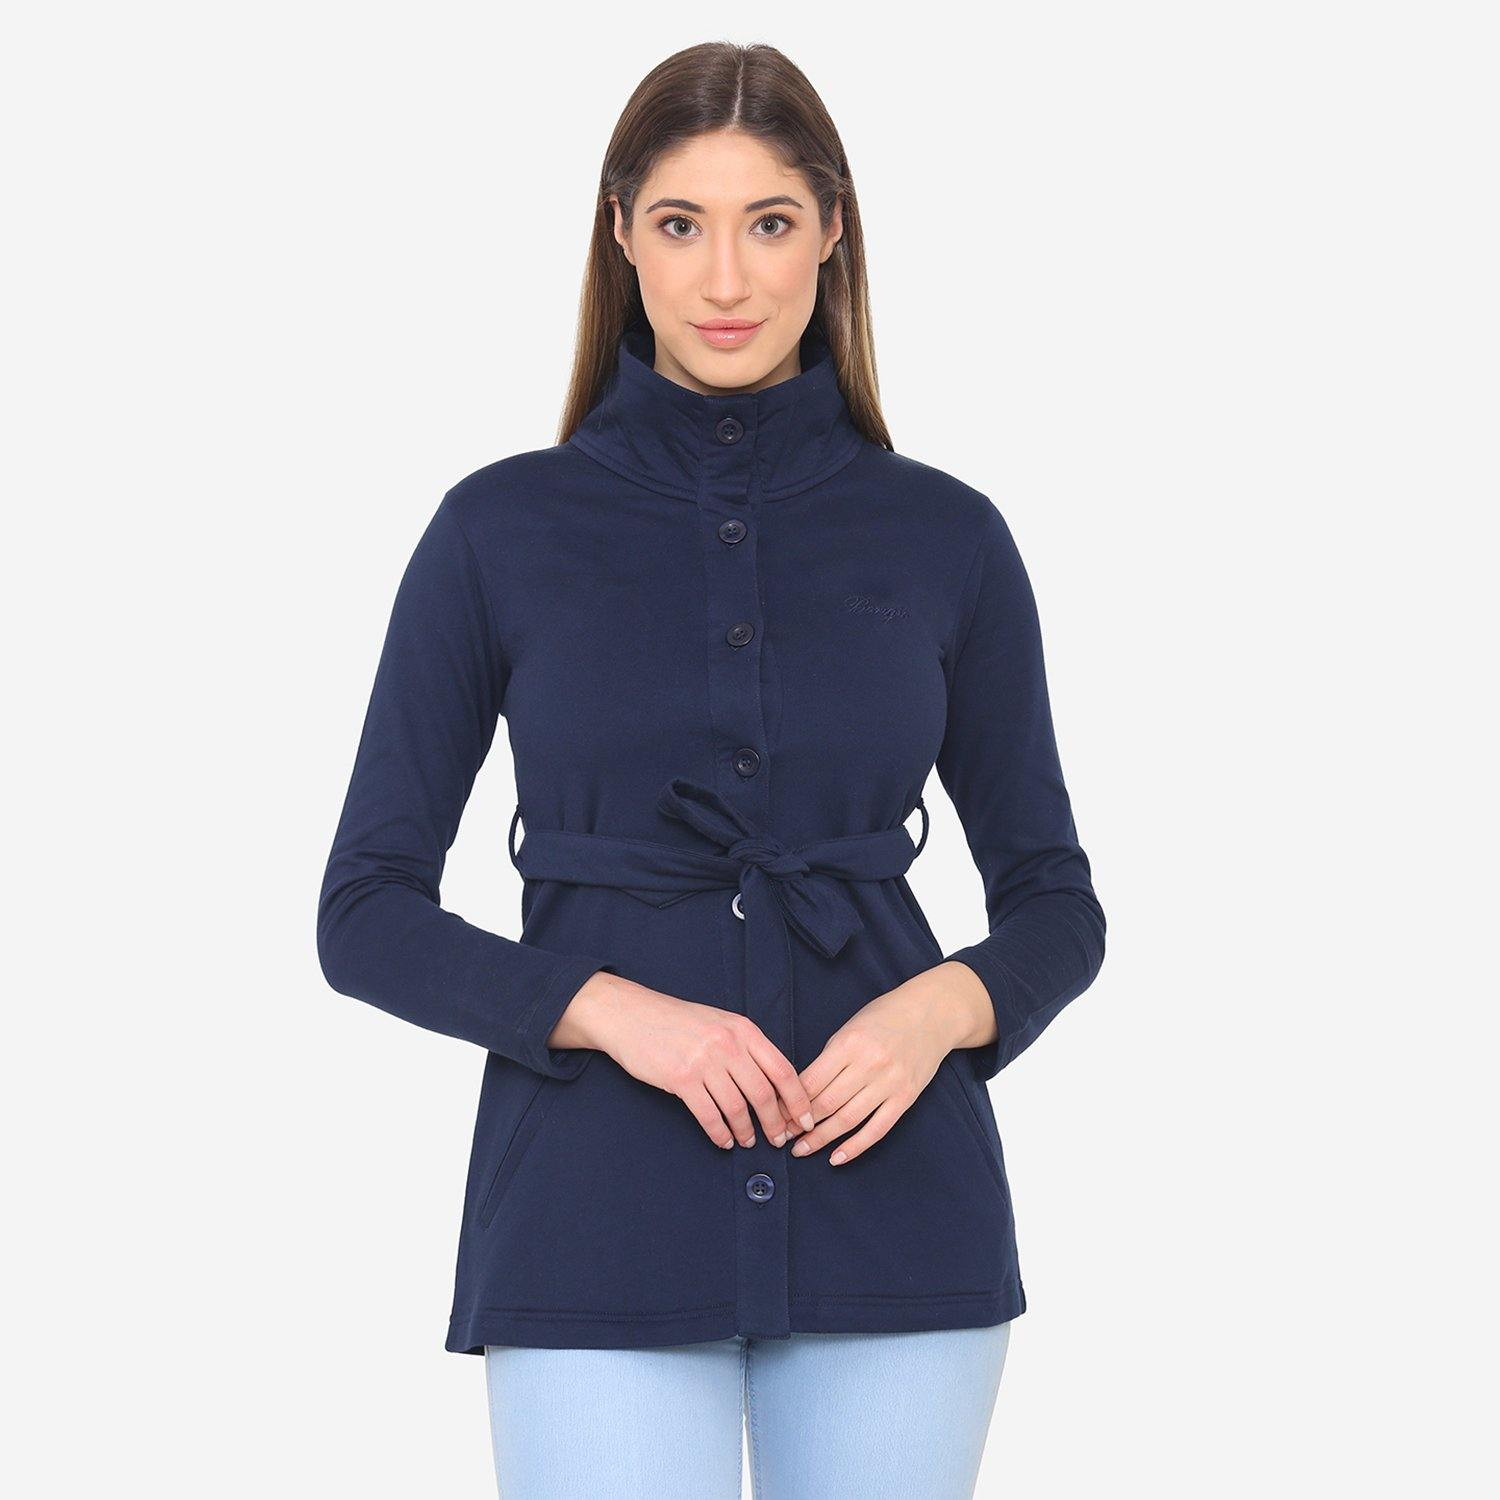 Women's Stylish & Comfy Jacket - Navy